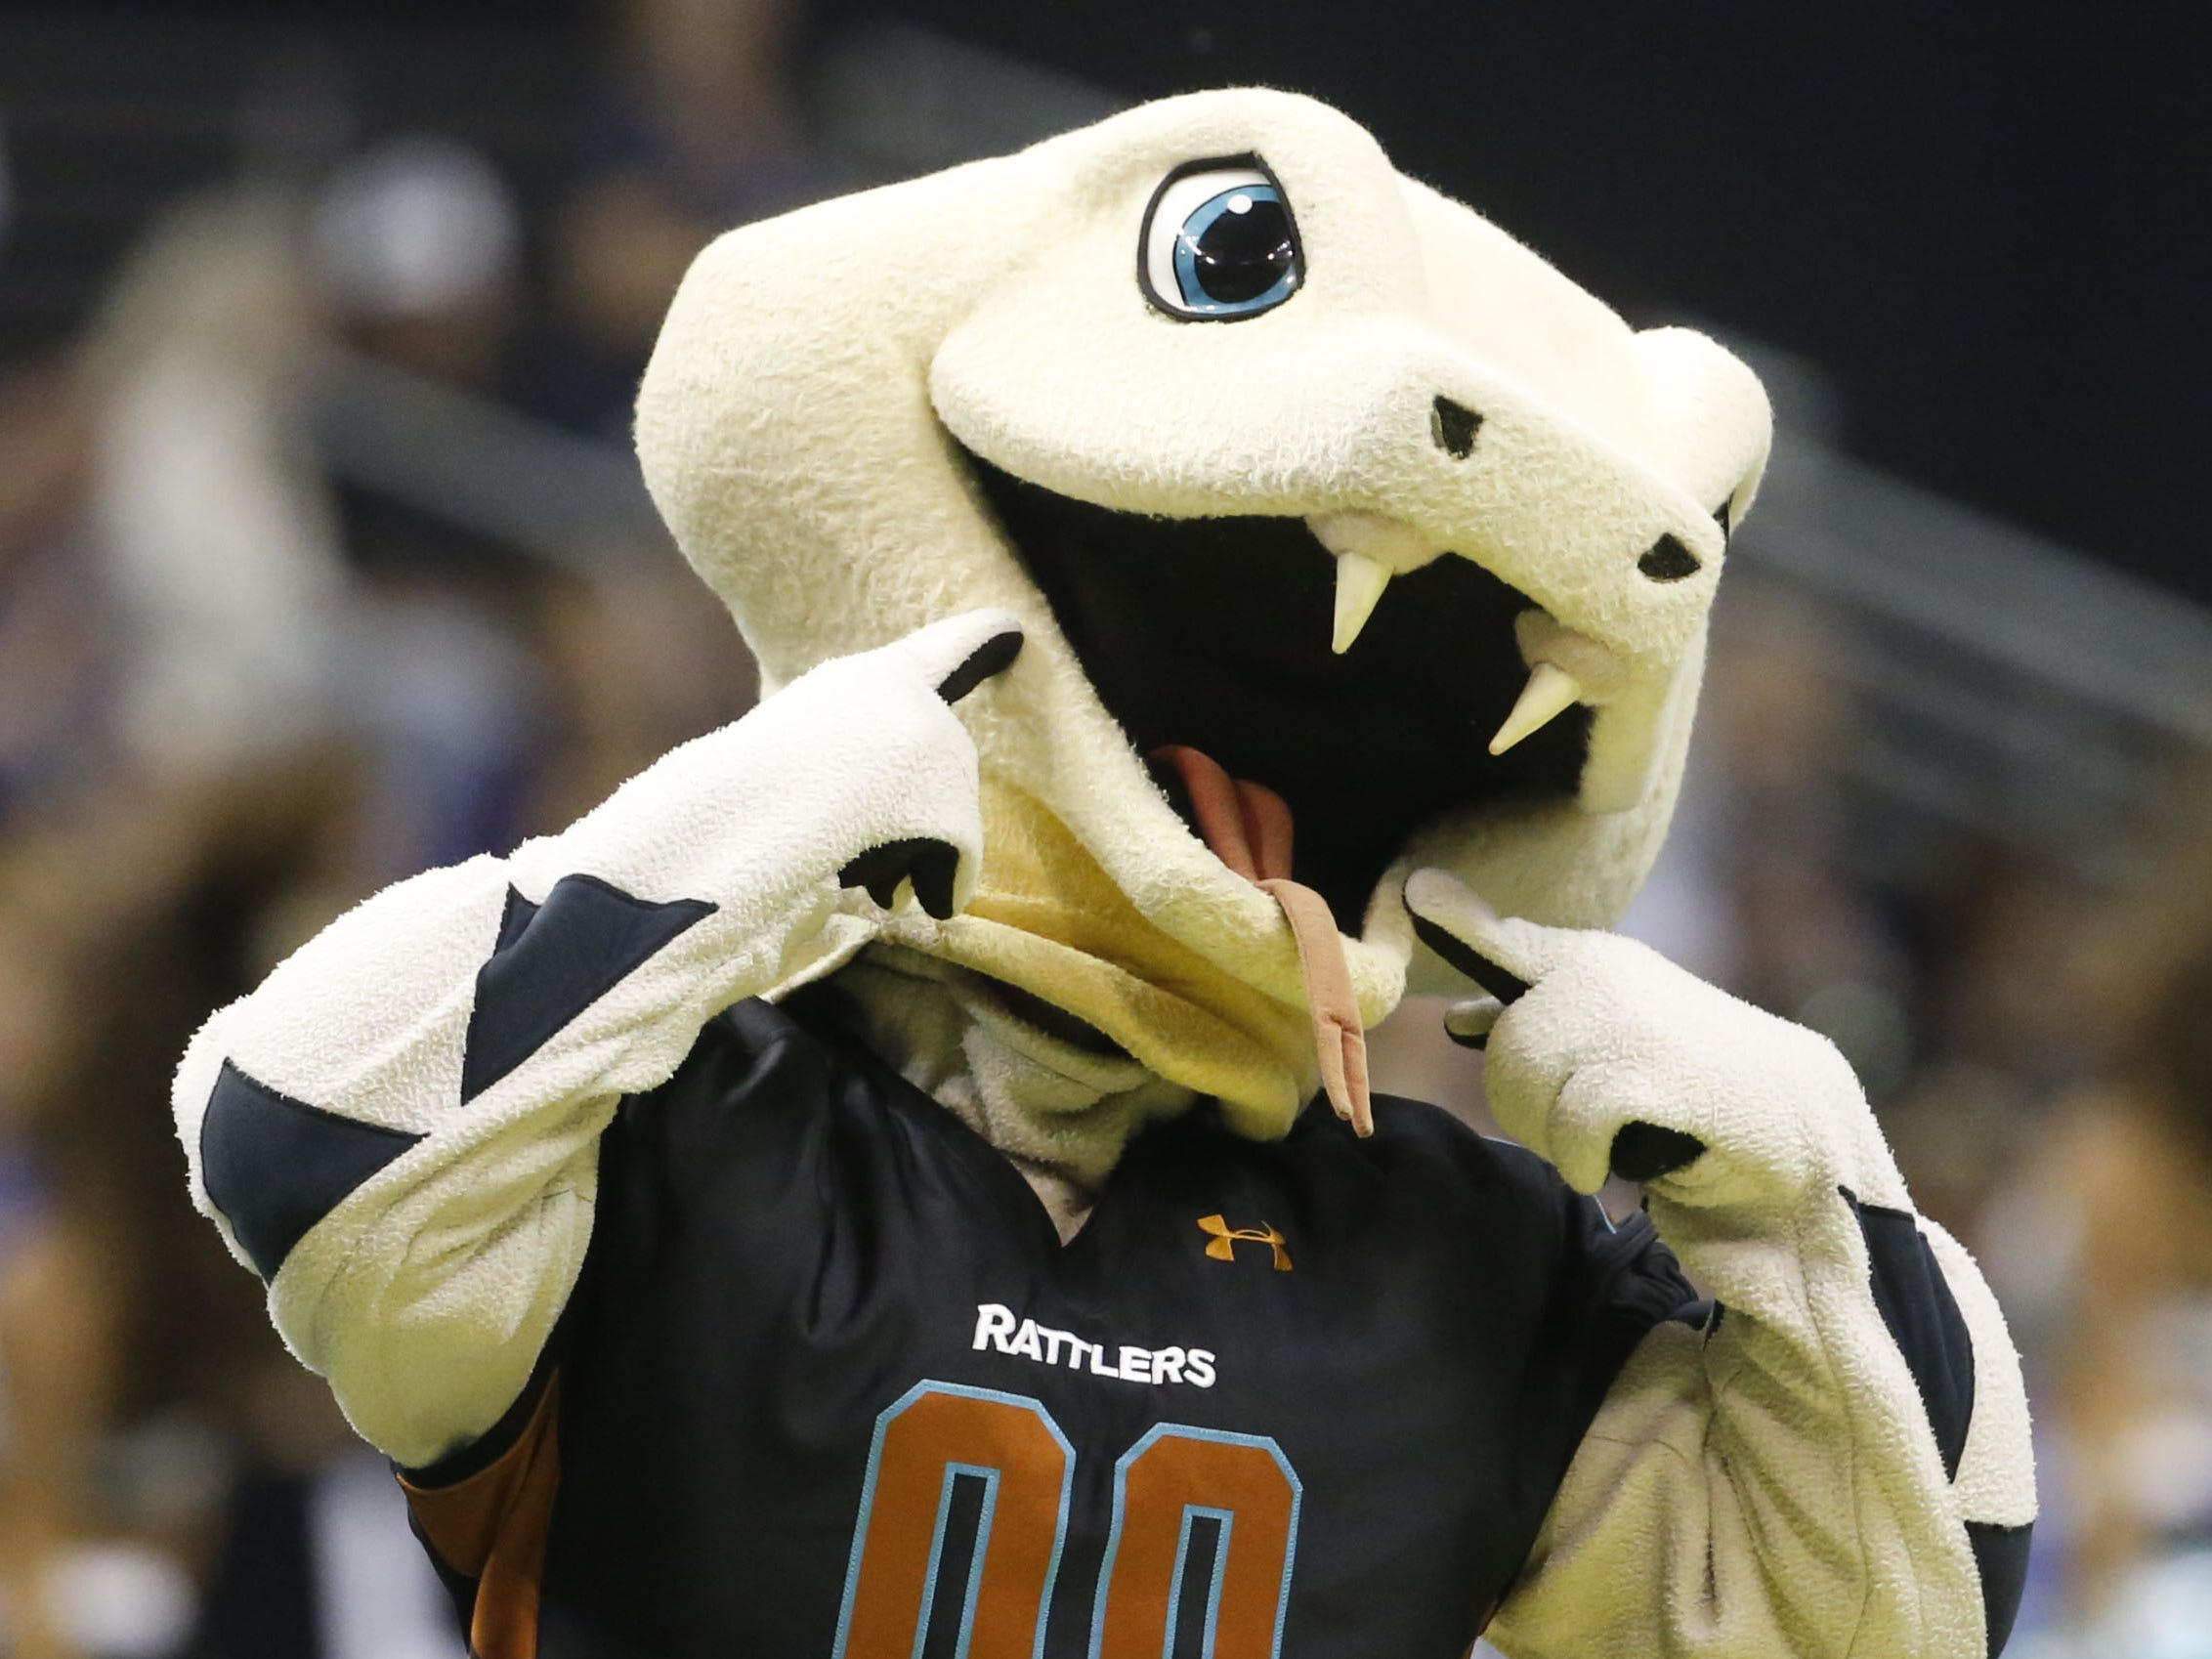 Stryker the Rattlers' mascot dances on the field during the first half at Talking Stick Resort Arena in Phoenix, Ariz. on March 16, 2019.